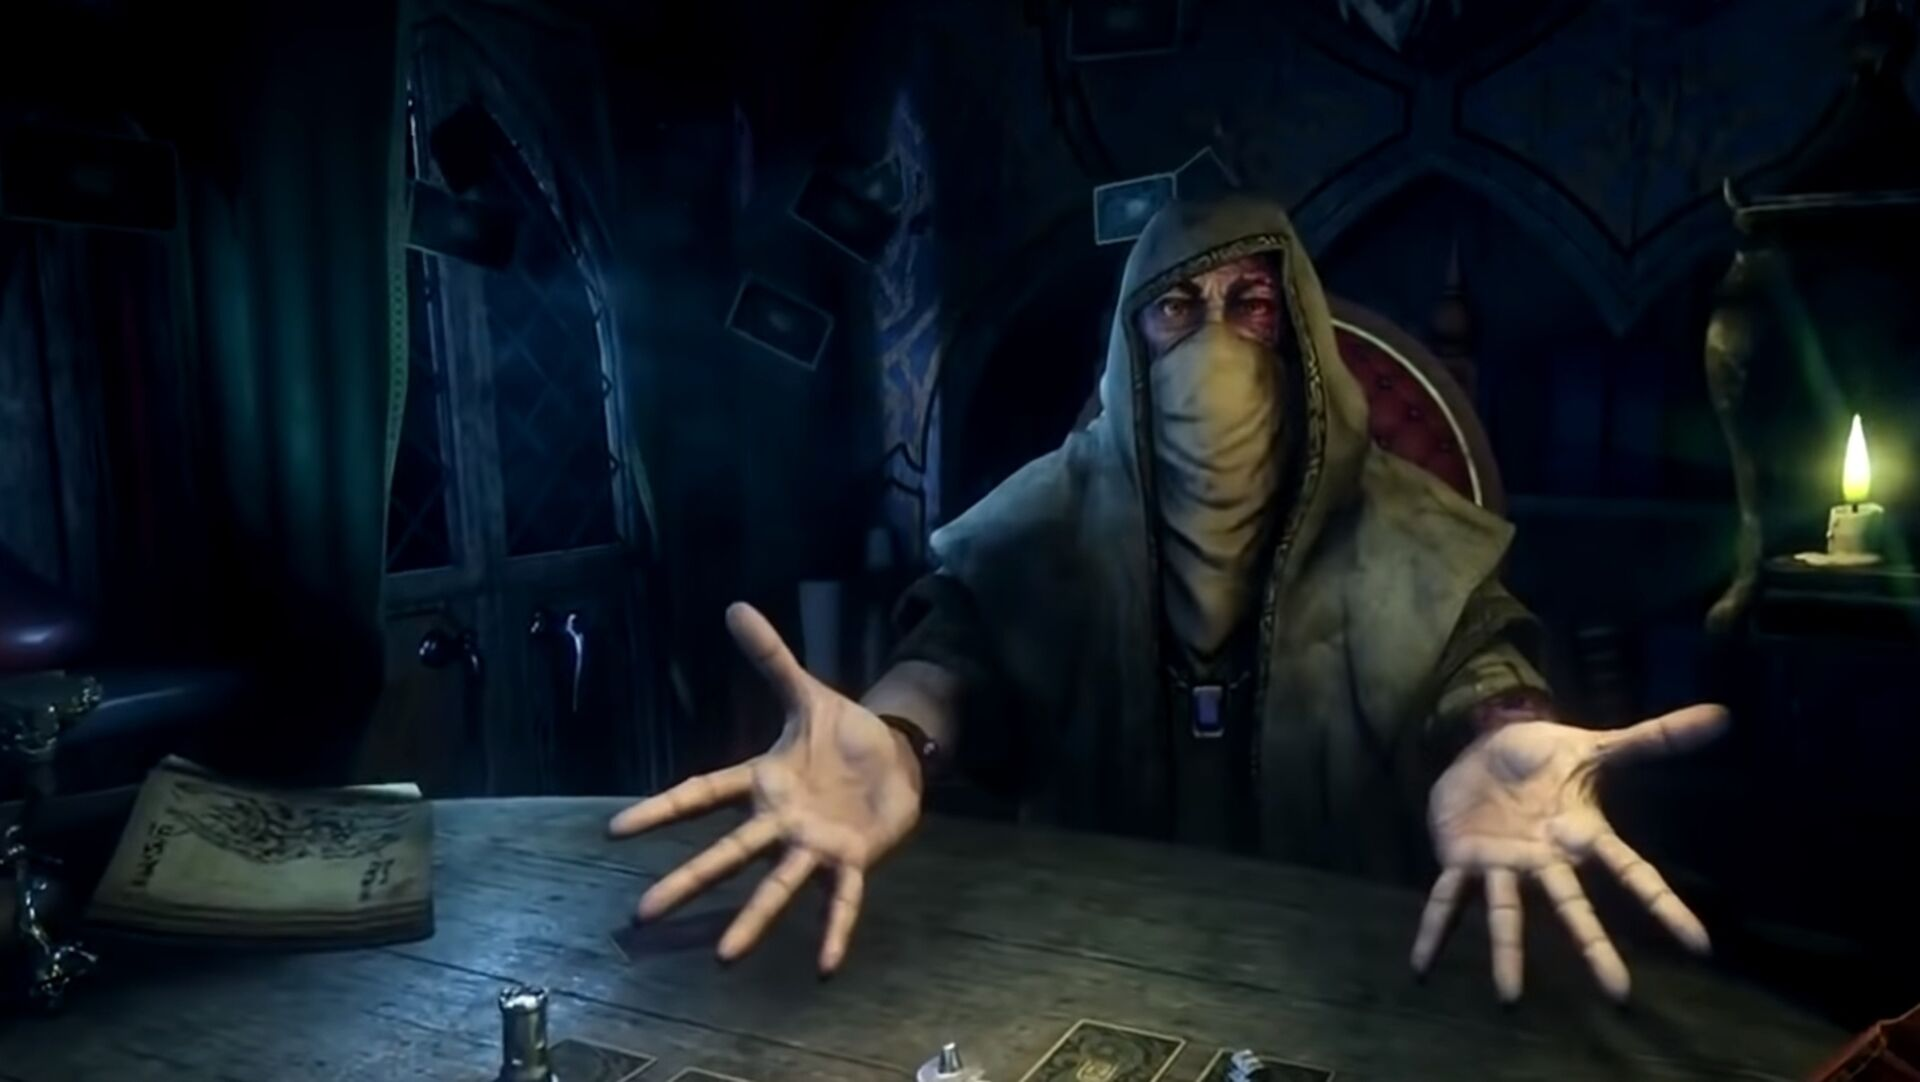 The studio behind Hand of Fate is closing its doors after nine years